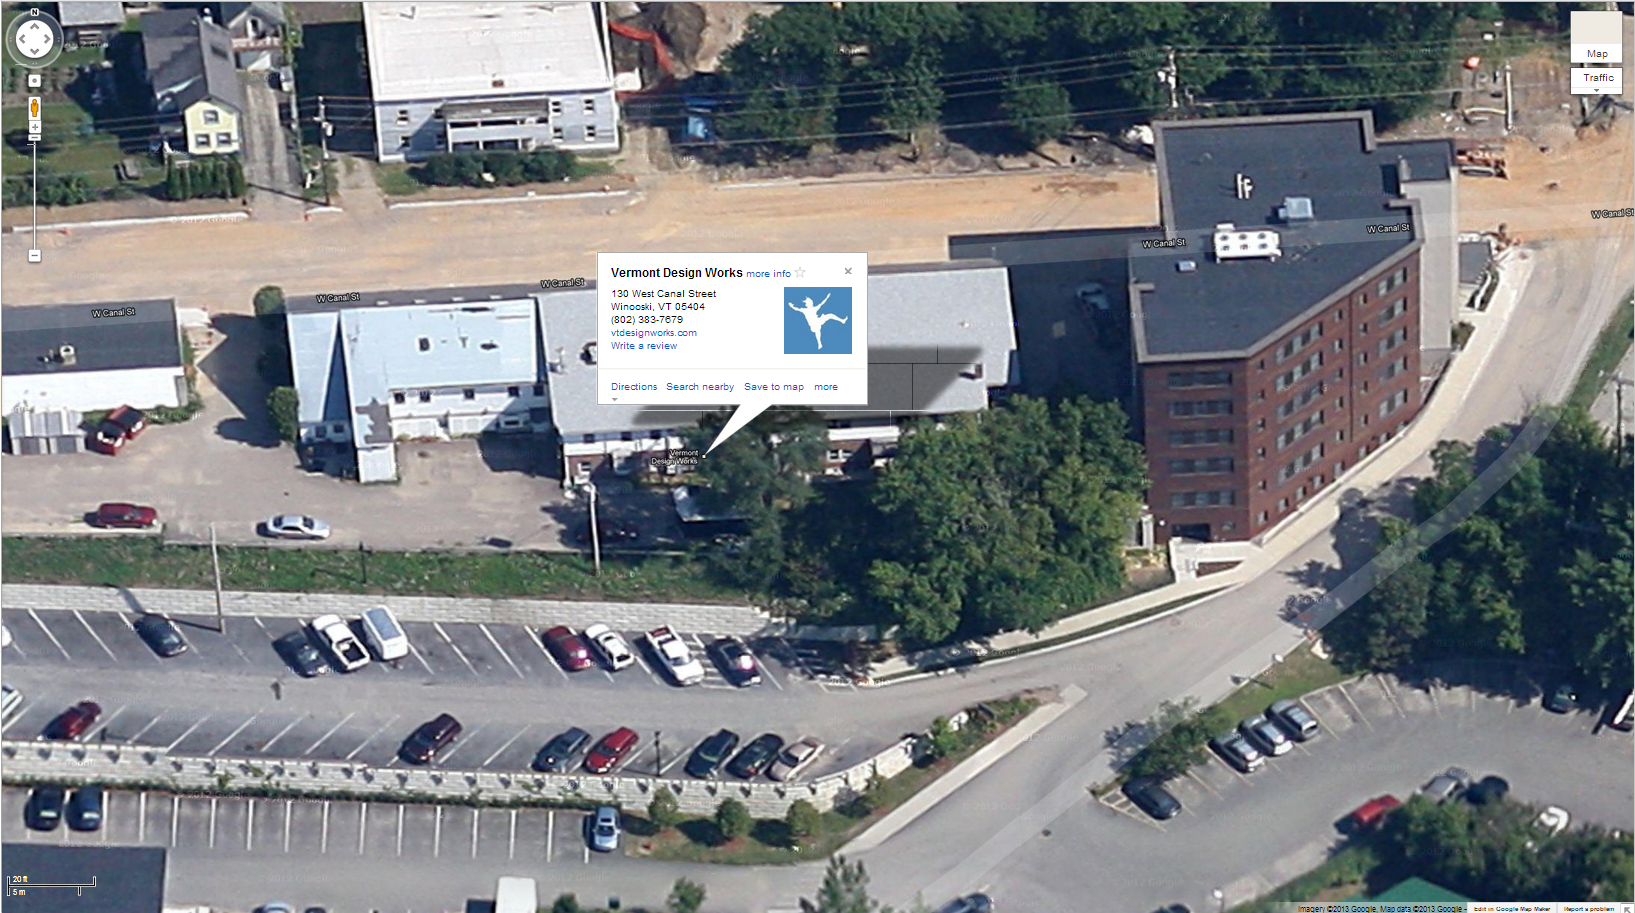 Google Aerial Maps Images Degree Angle Earth Exploration - Google maps aerial